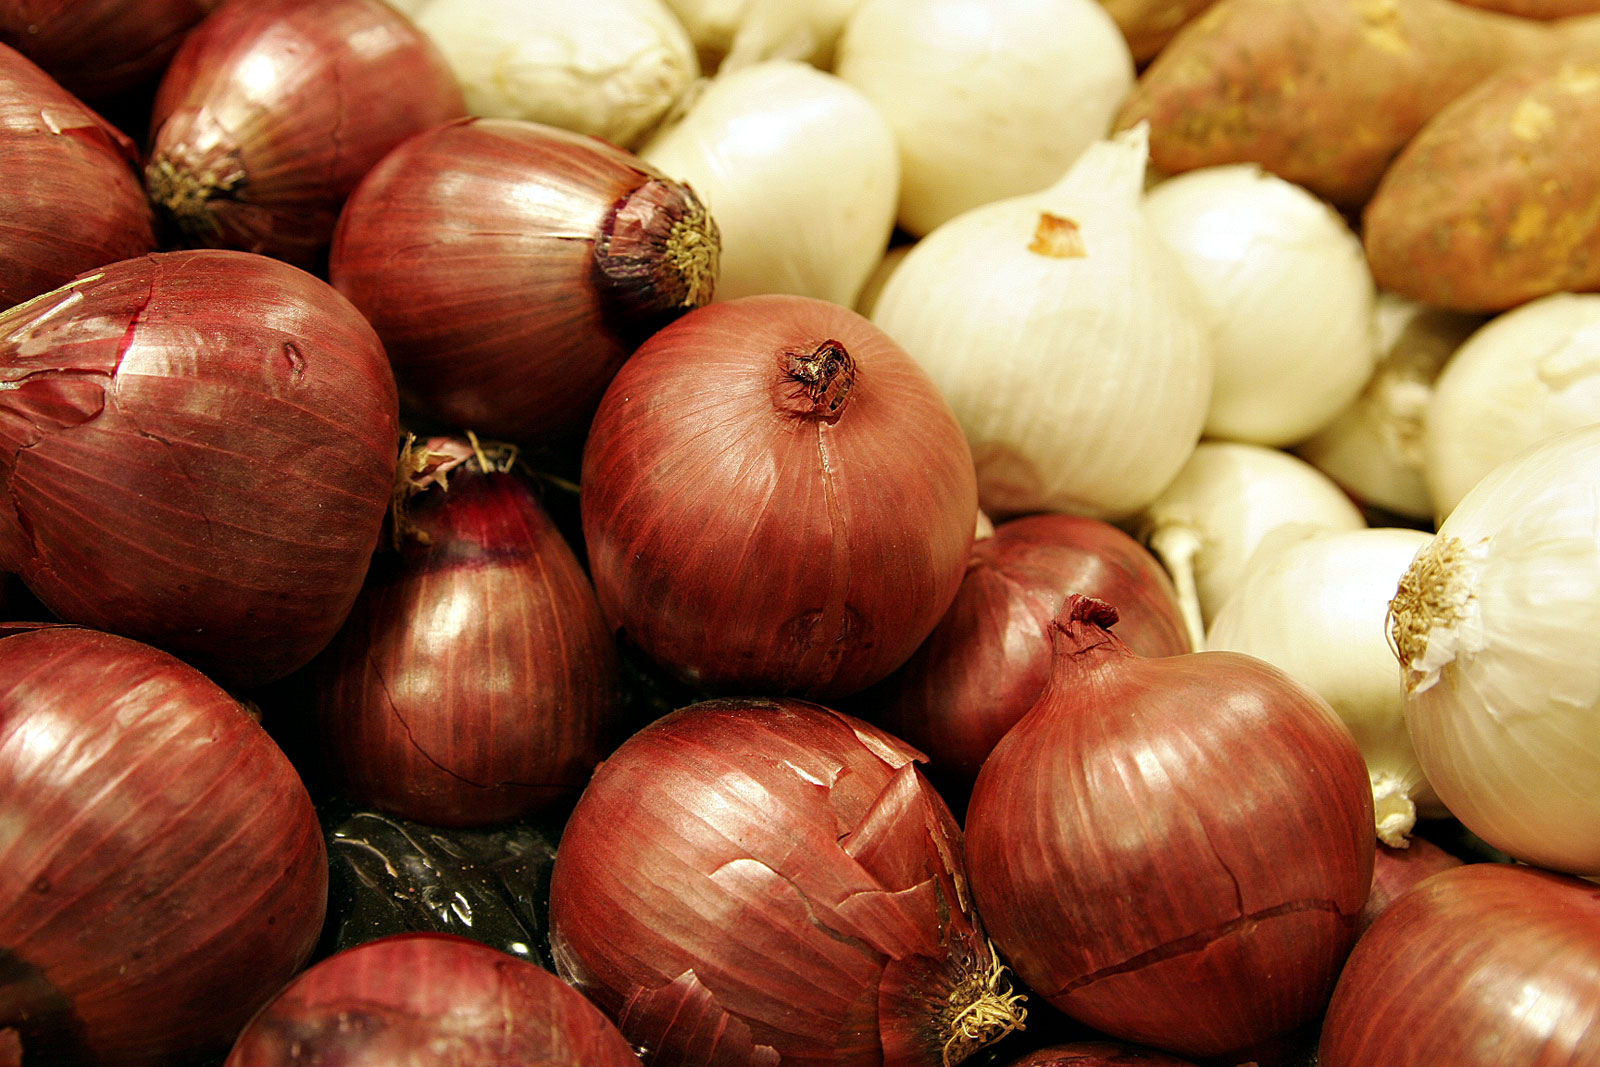 File:Two colors of onions.jpg - Wikipedia, the free encyclopedia